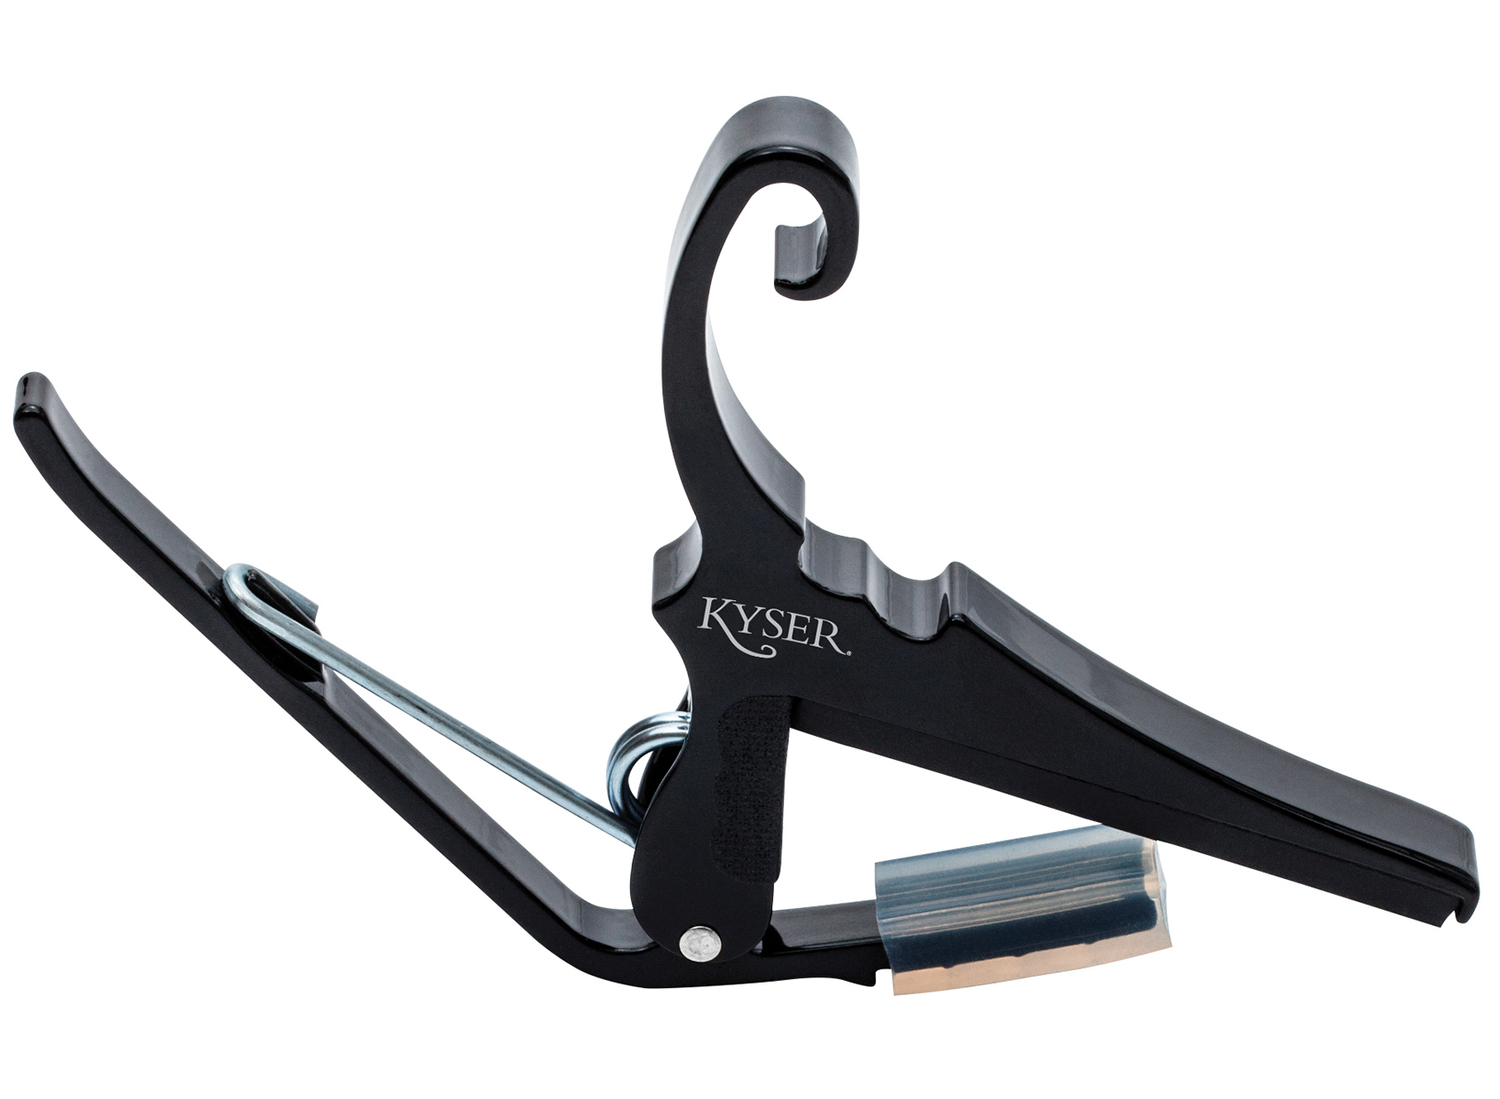 Kyser KGCBA Black Quick Change Capo for Classical Guitars - Black